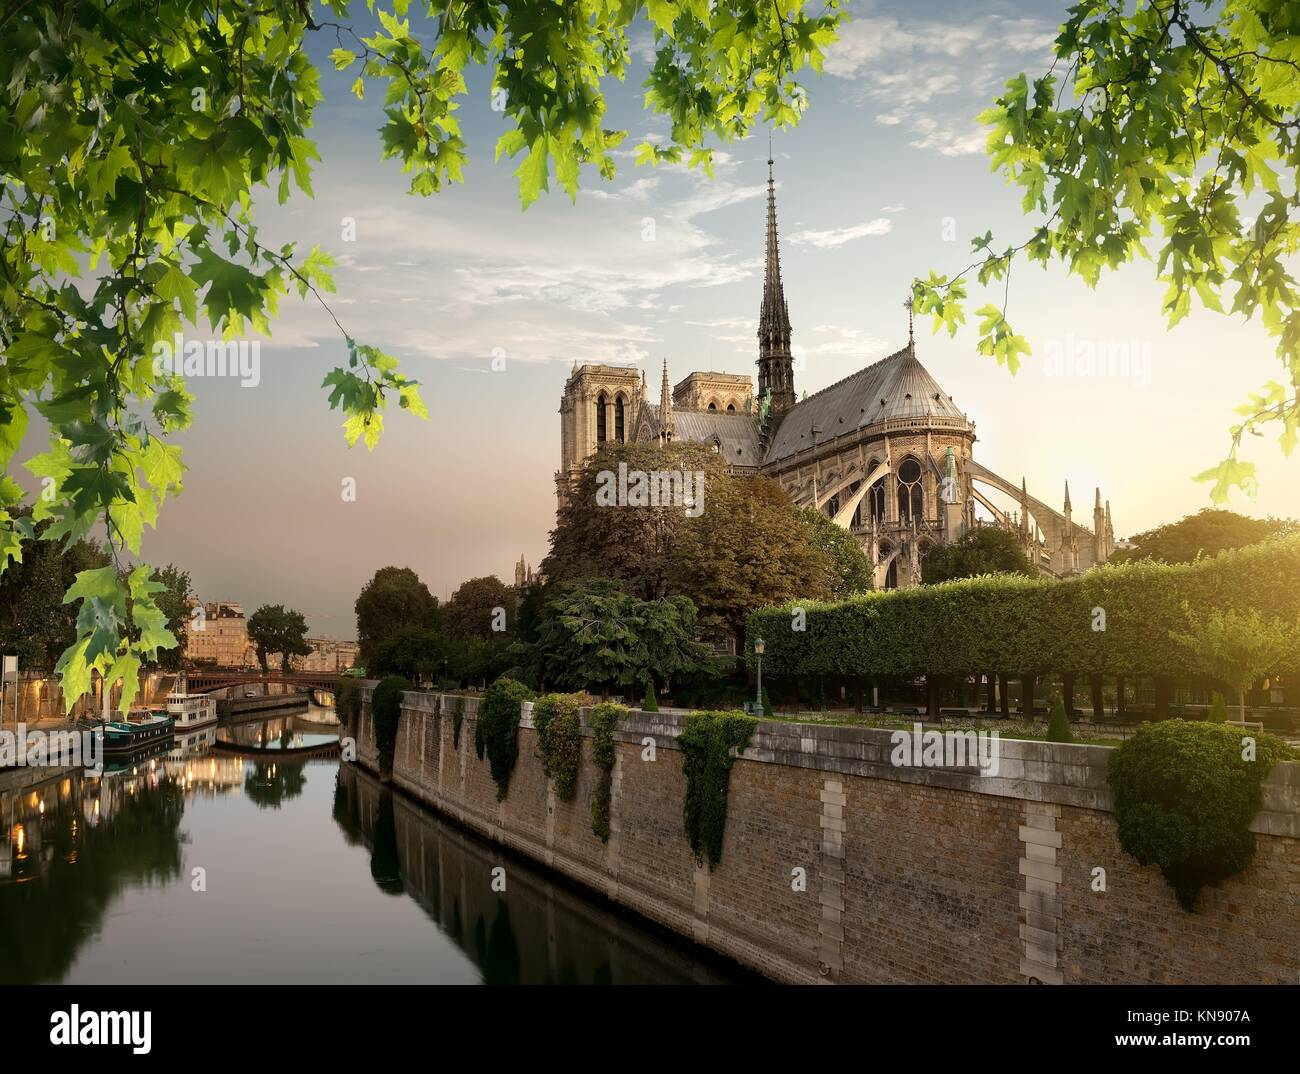 Notre Dame and park on river Seine in Paris, France. - Stock Image